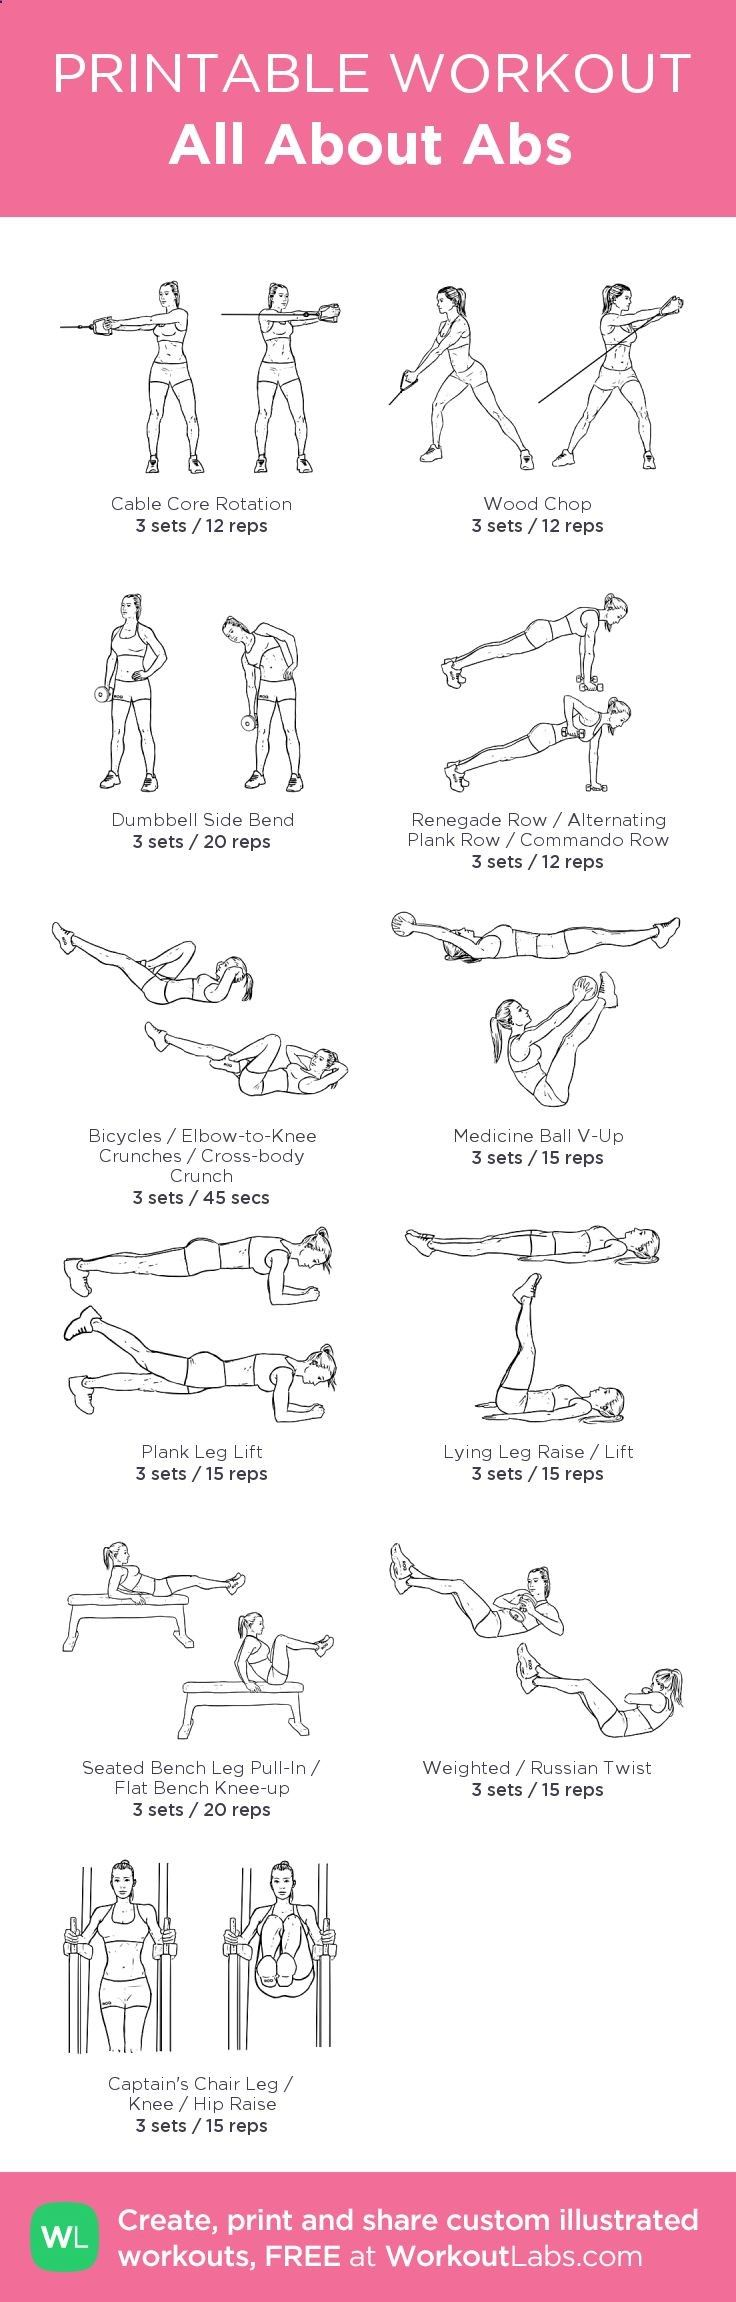 All About Abs:my visual workout created at WorkoutLabs.com • Click through to customize and download as a FREE PDF! #customworkout